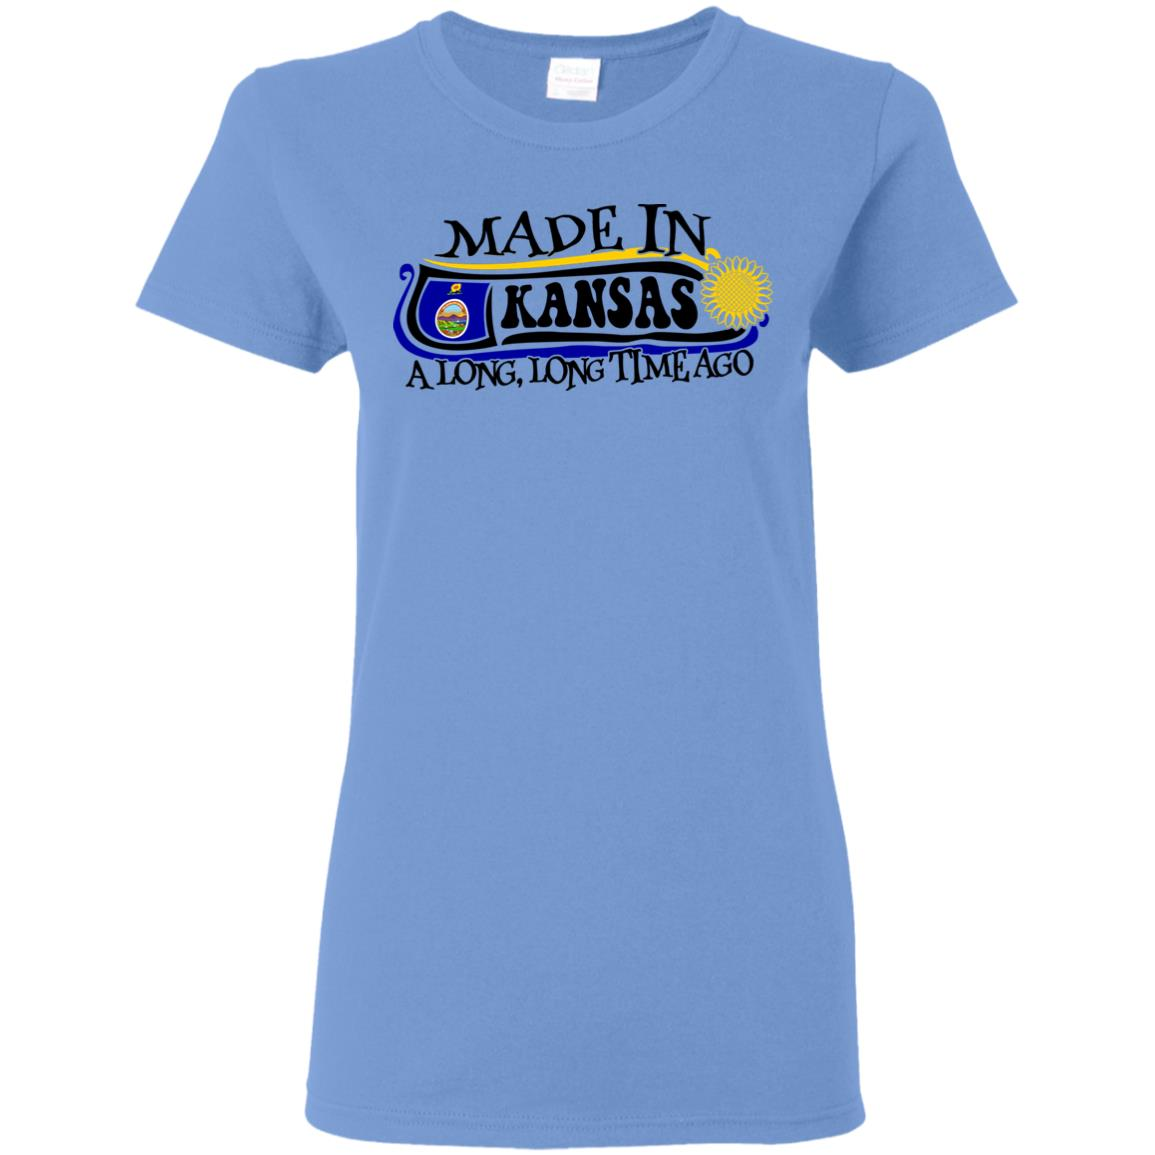 Made In Kansas A Long Long Time Ago T-Shirt